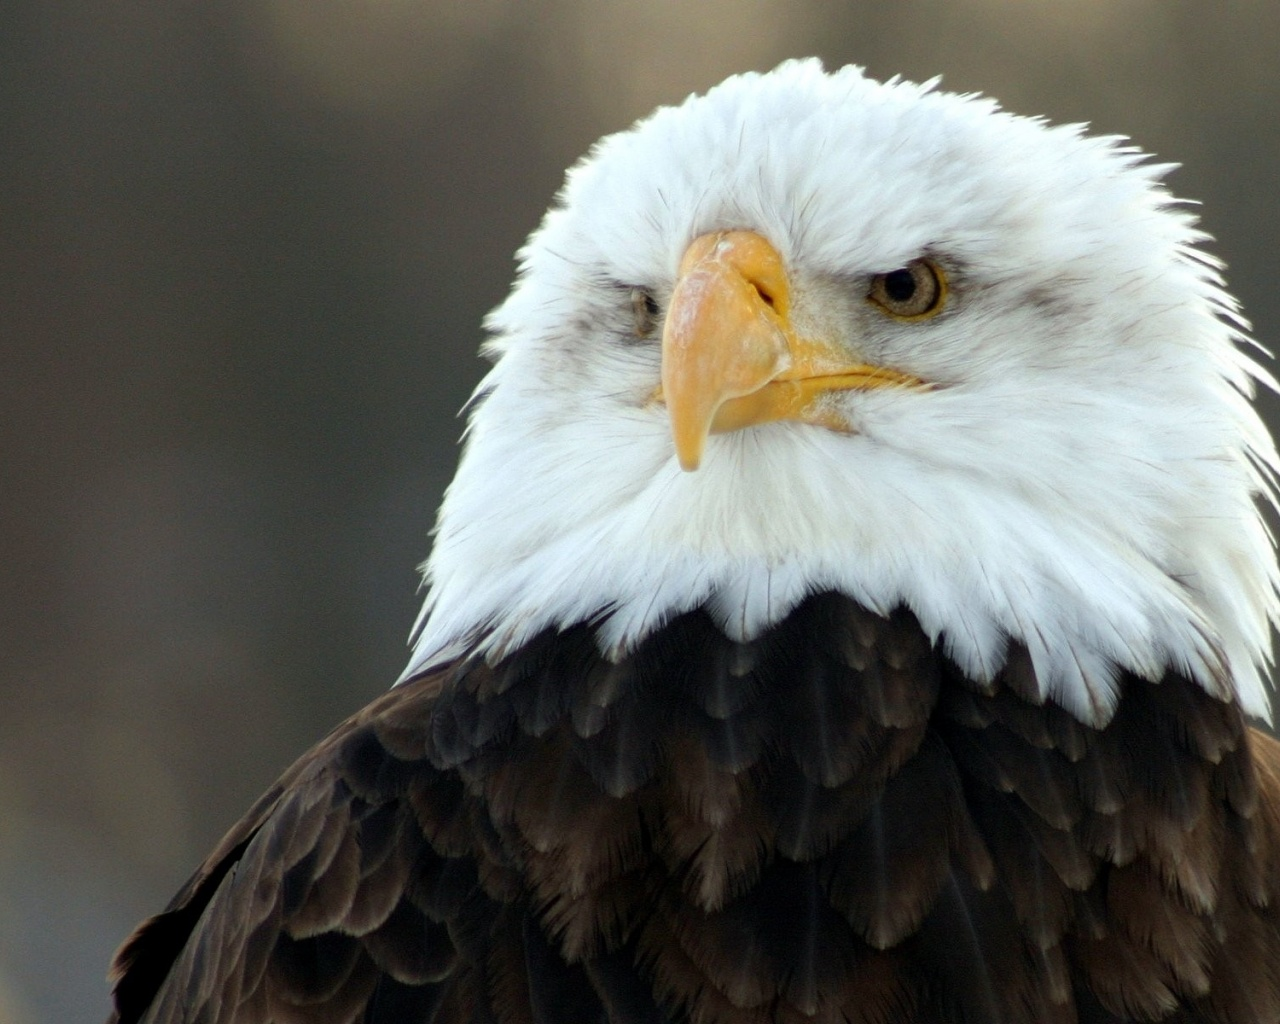 eagle 1280x1024 wallpaper -#main